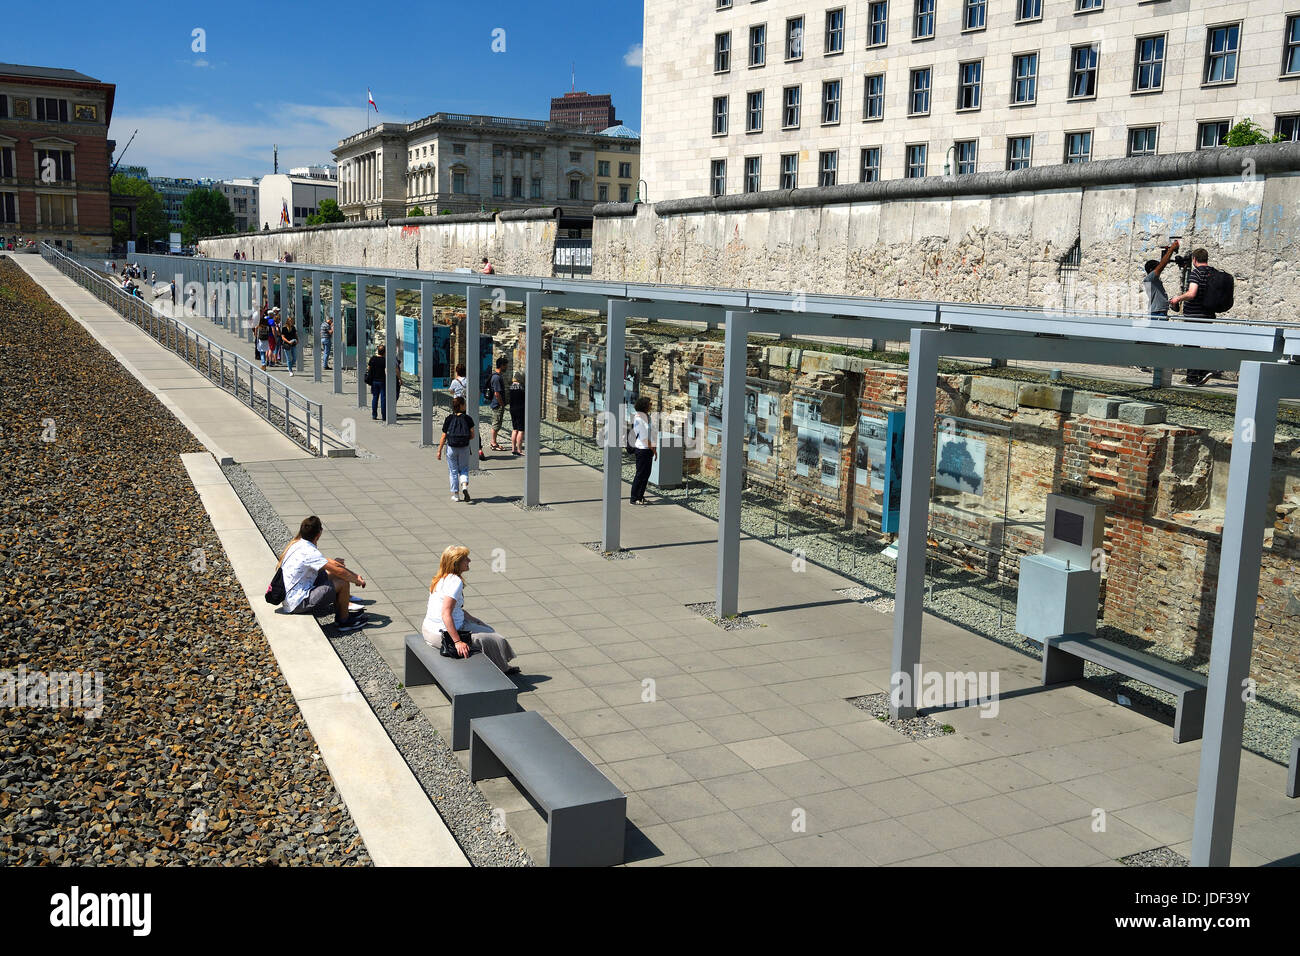 Exhibition Topography of the Terror, at back Wall Remains and the Detlev-Rohwedder House, Berlin, Germany - Stock Image